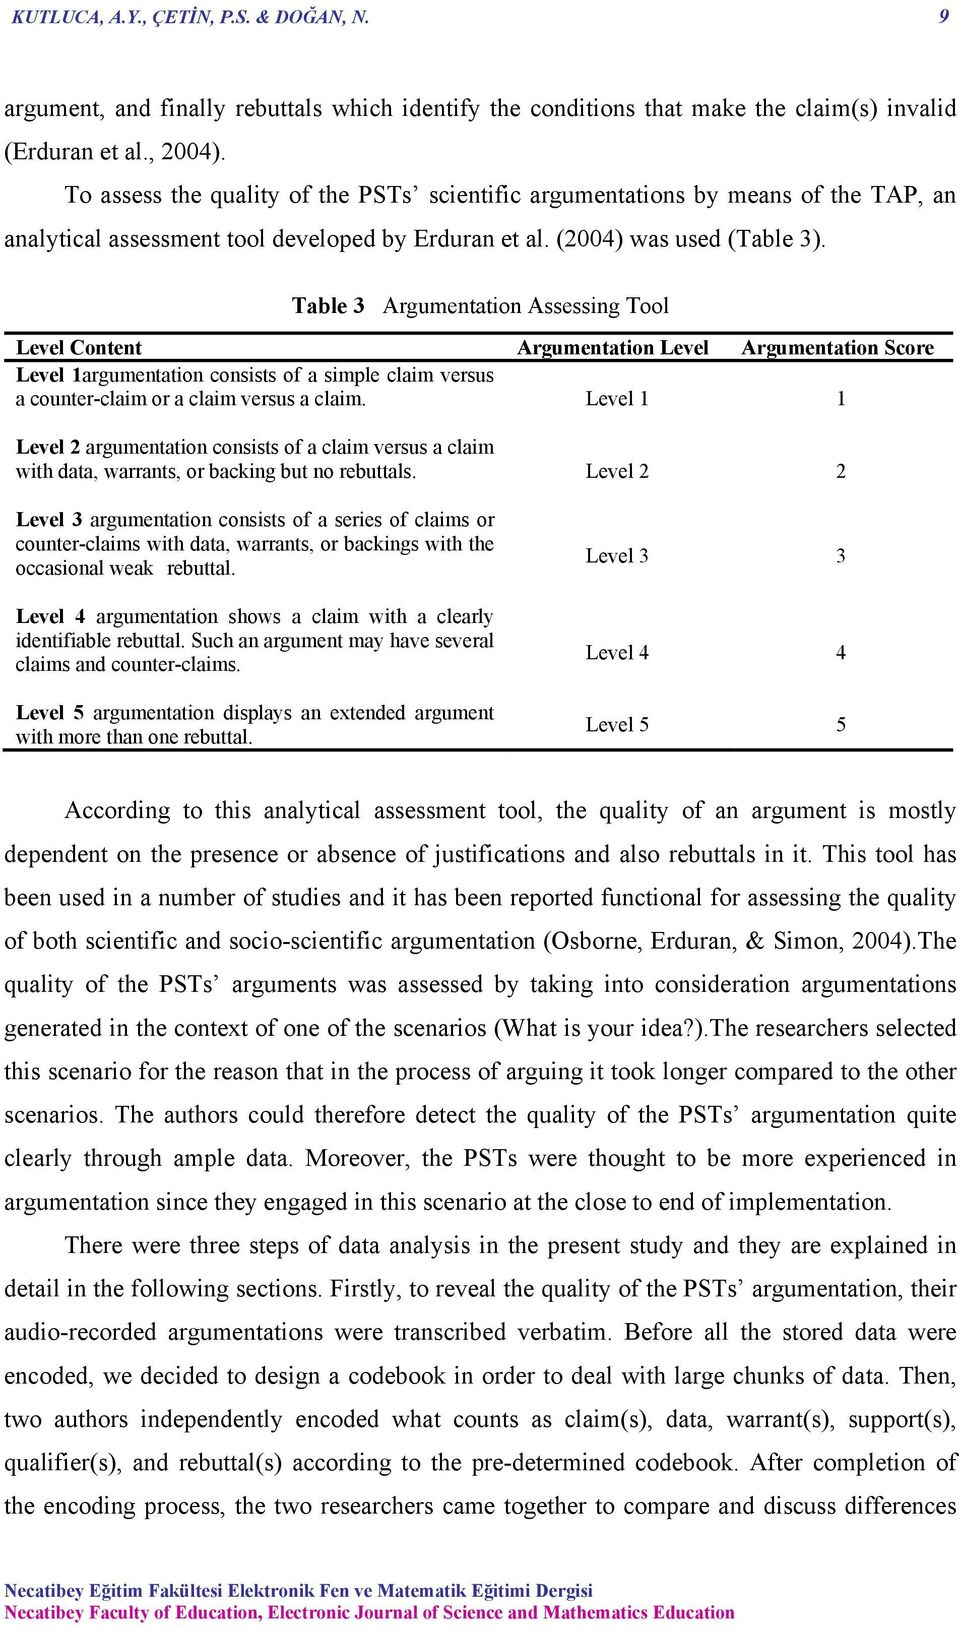 Table 3 Argumentation Assessing Tool Level Content Argumentation Level Argumentation Score Level 1argumentation consists of a simple claim versus a counter-claim or a claim versus a claim.